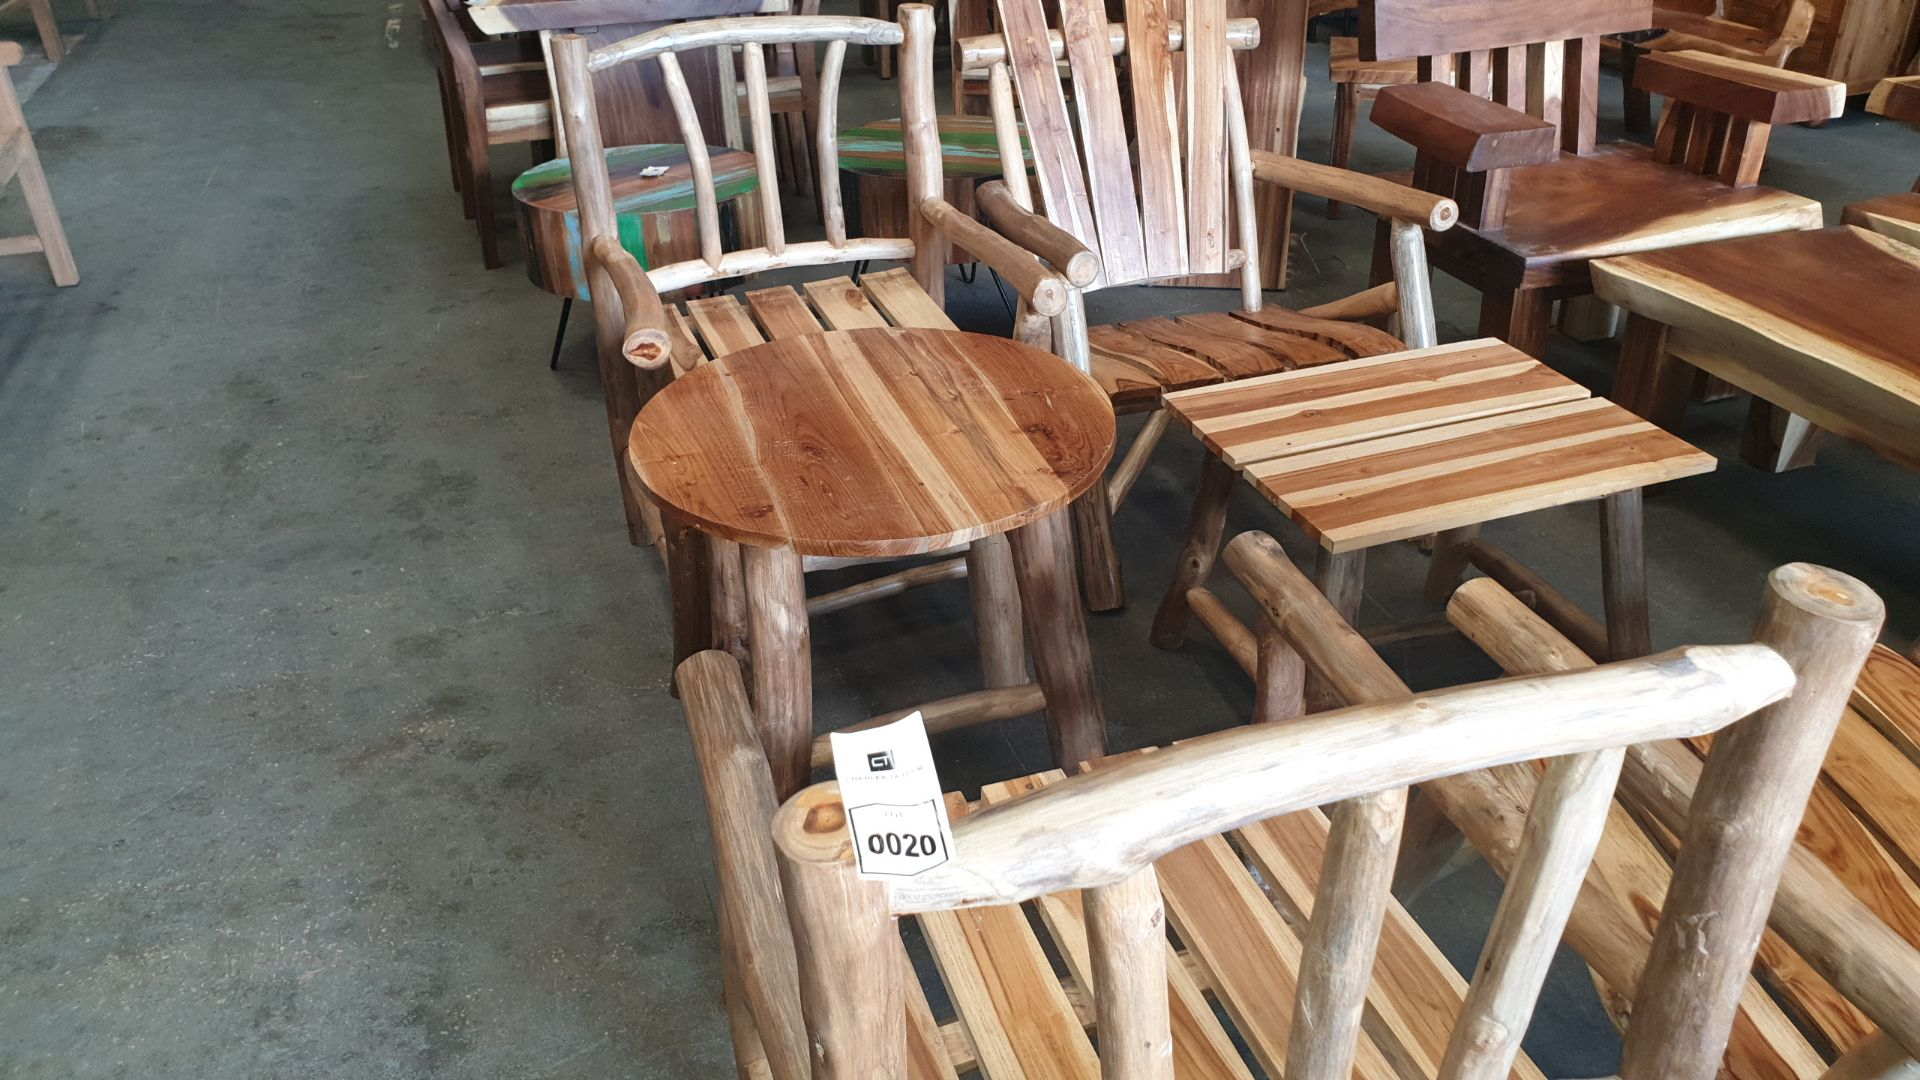 Lot 20 - BRAND NEW SOLID TEAK ROOT WOODEN FLINTSTONE CHAIRS AND COFFEE TABLE 95 X 65 X 60cm RRP £725